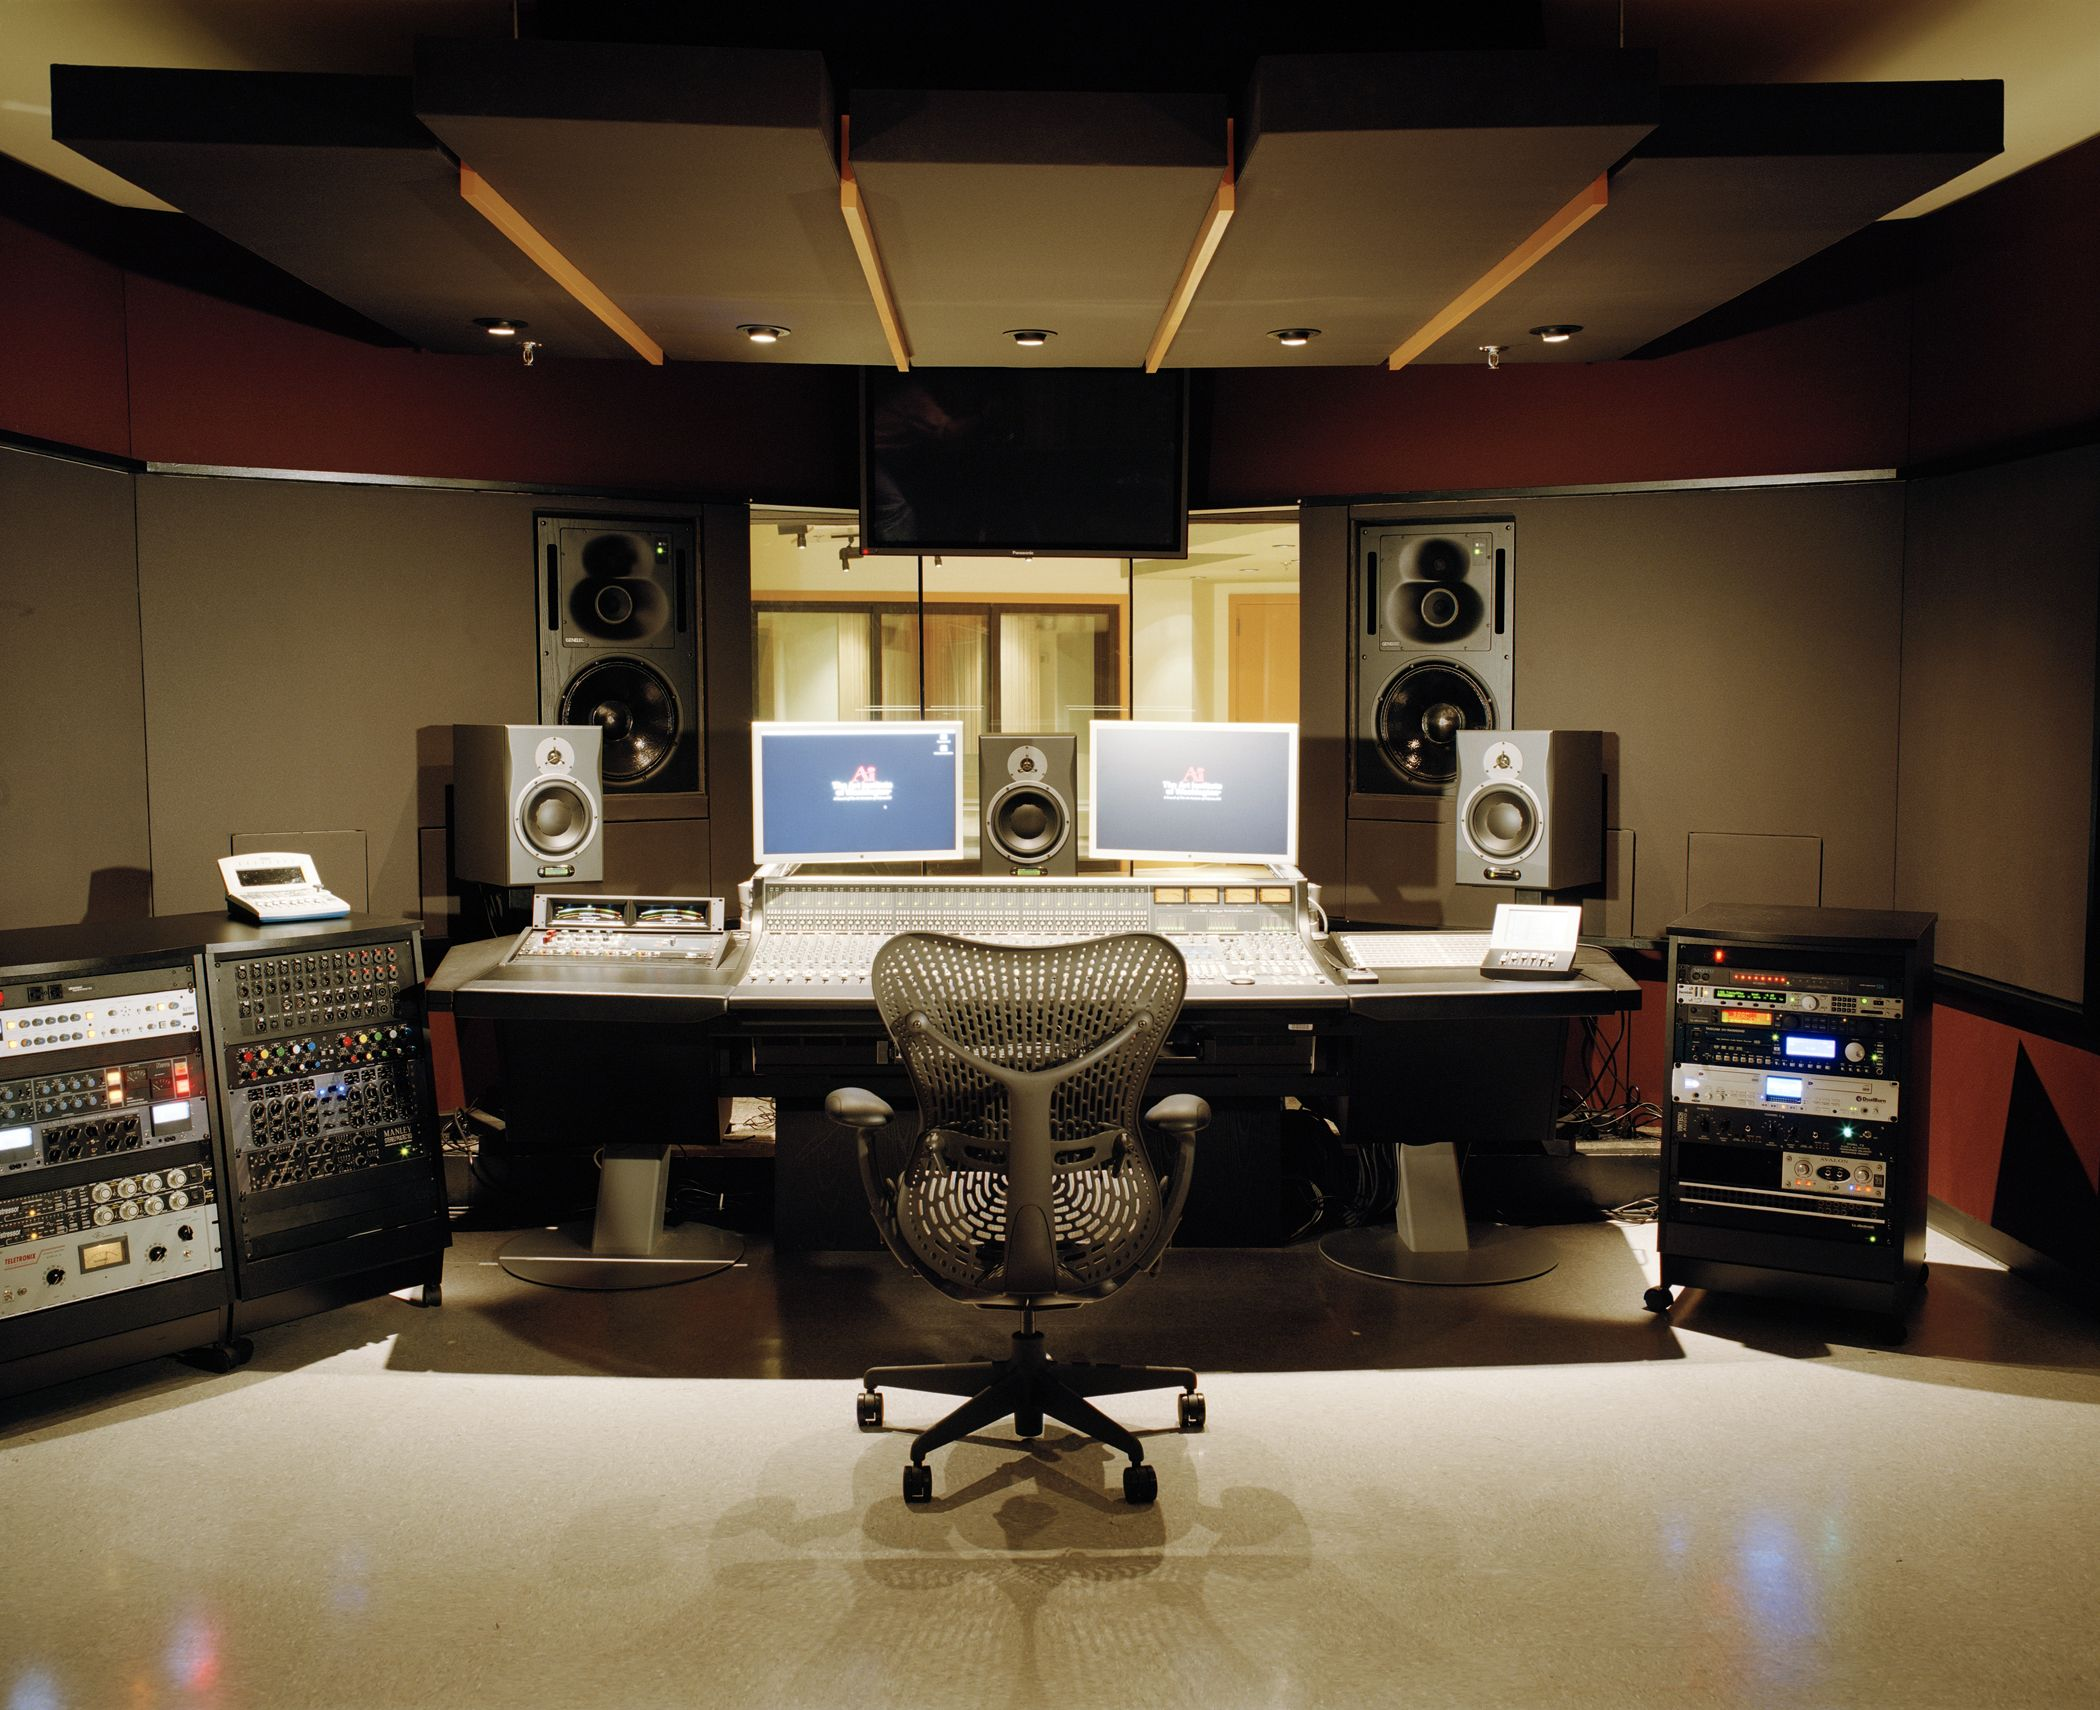 Strange 17 Best Images About 01 Music Recording Studio On Pinterest Largest Home Design Picture Inspirations Pitcheantrous